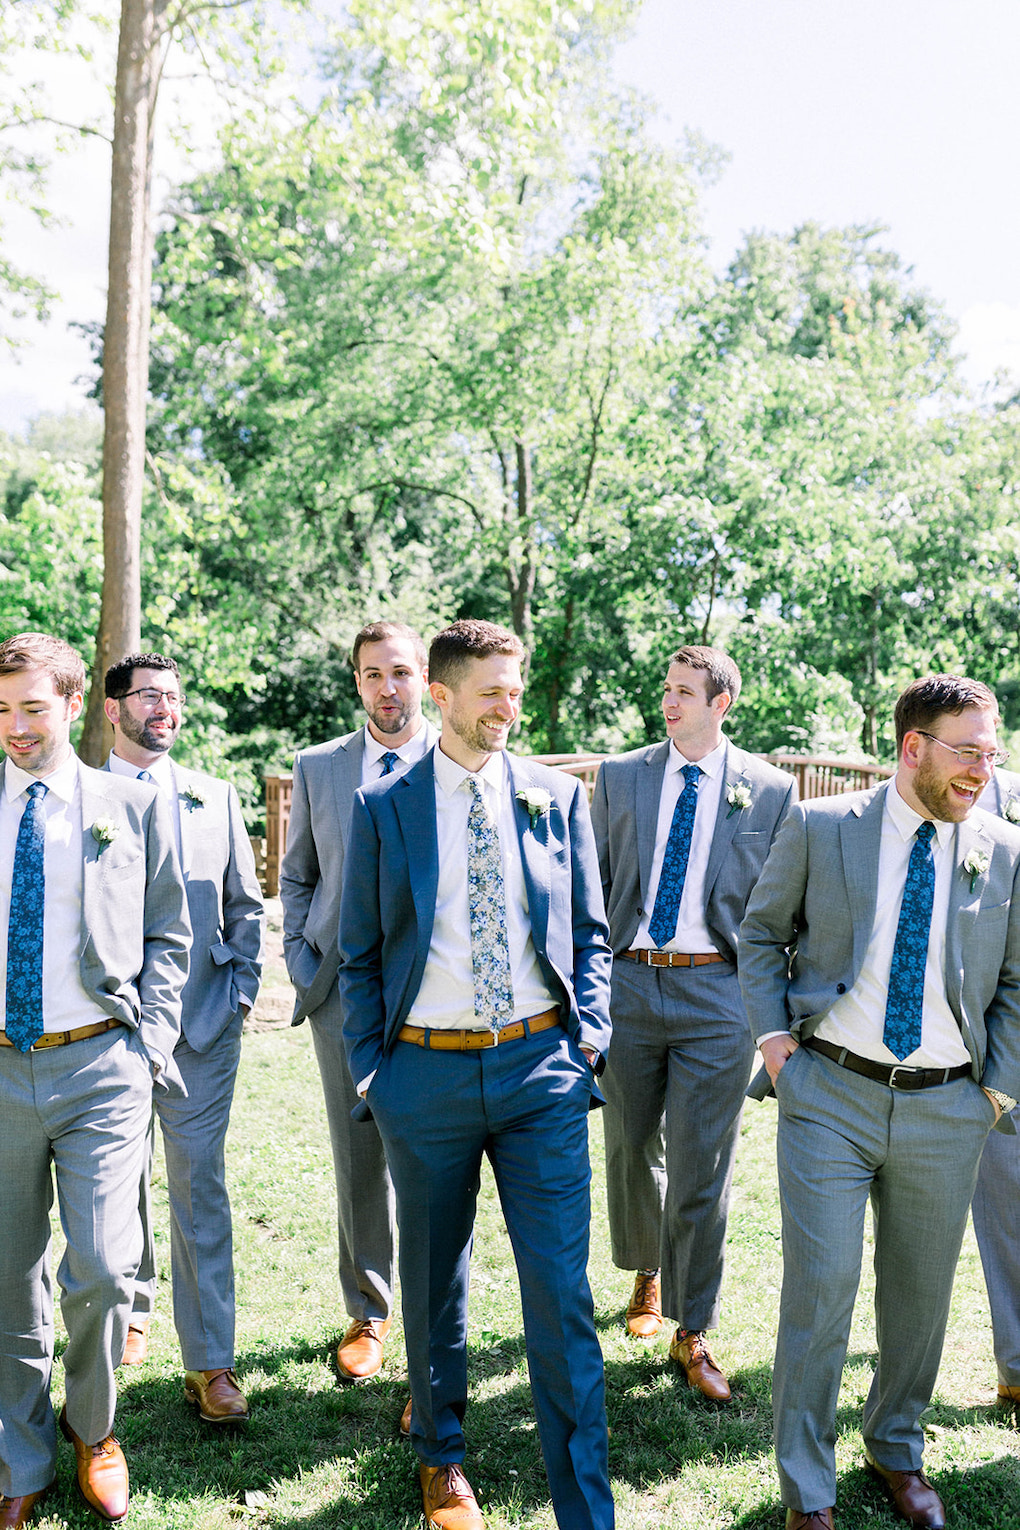 Modern groomsmen photos: Pittsburgh Botanic Garden wedding planned by Exhale Events. See more wedding inspiration at exhale-events.com!